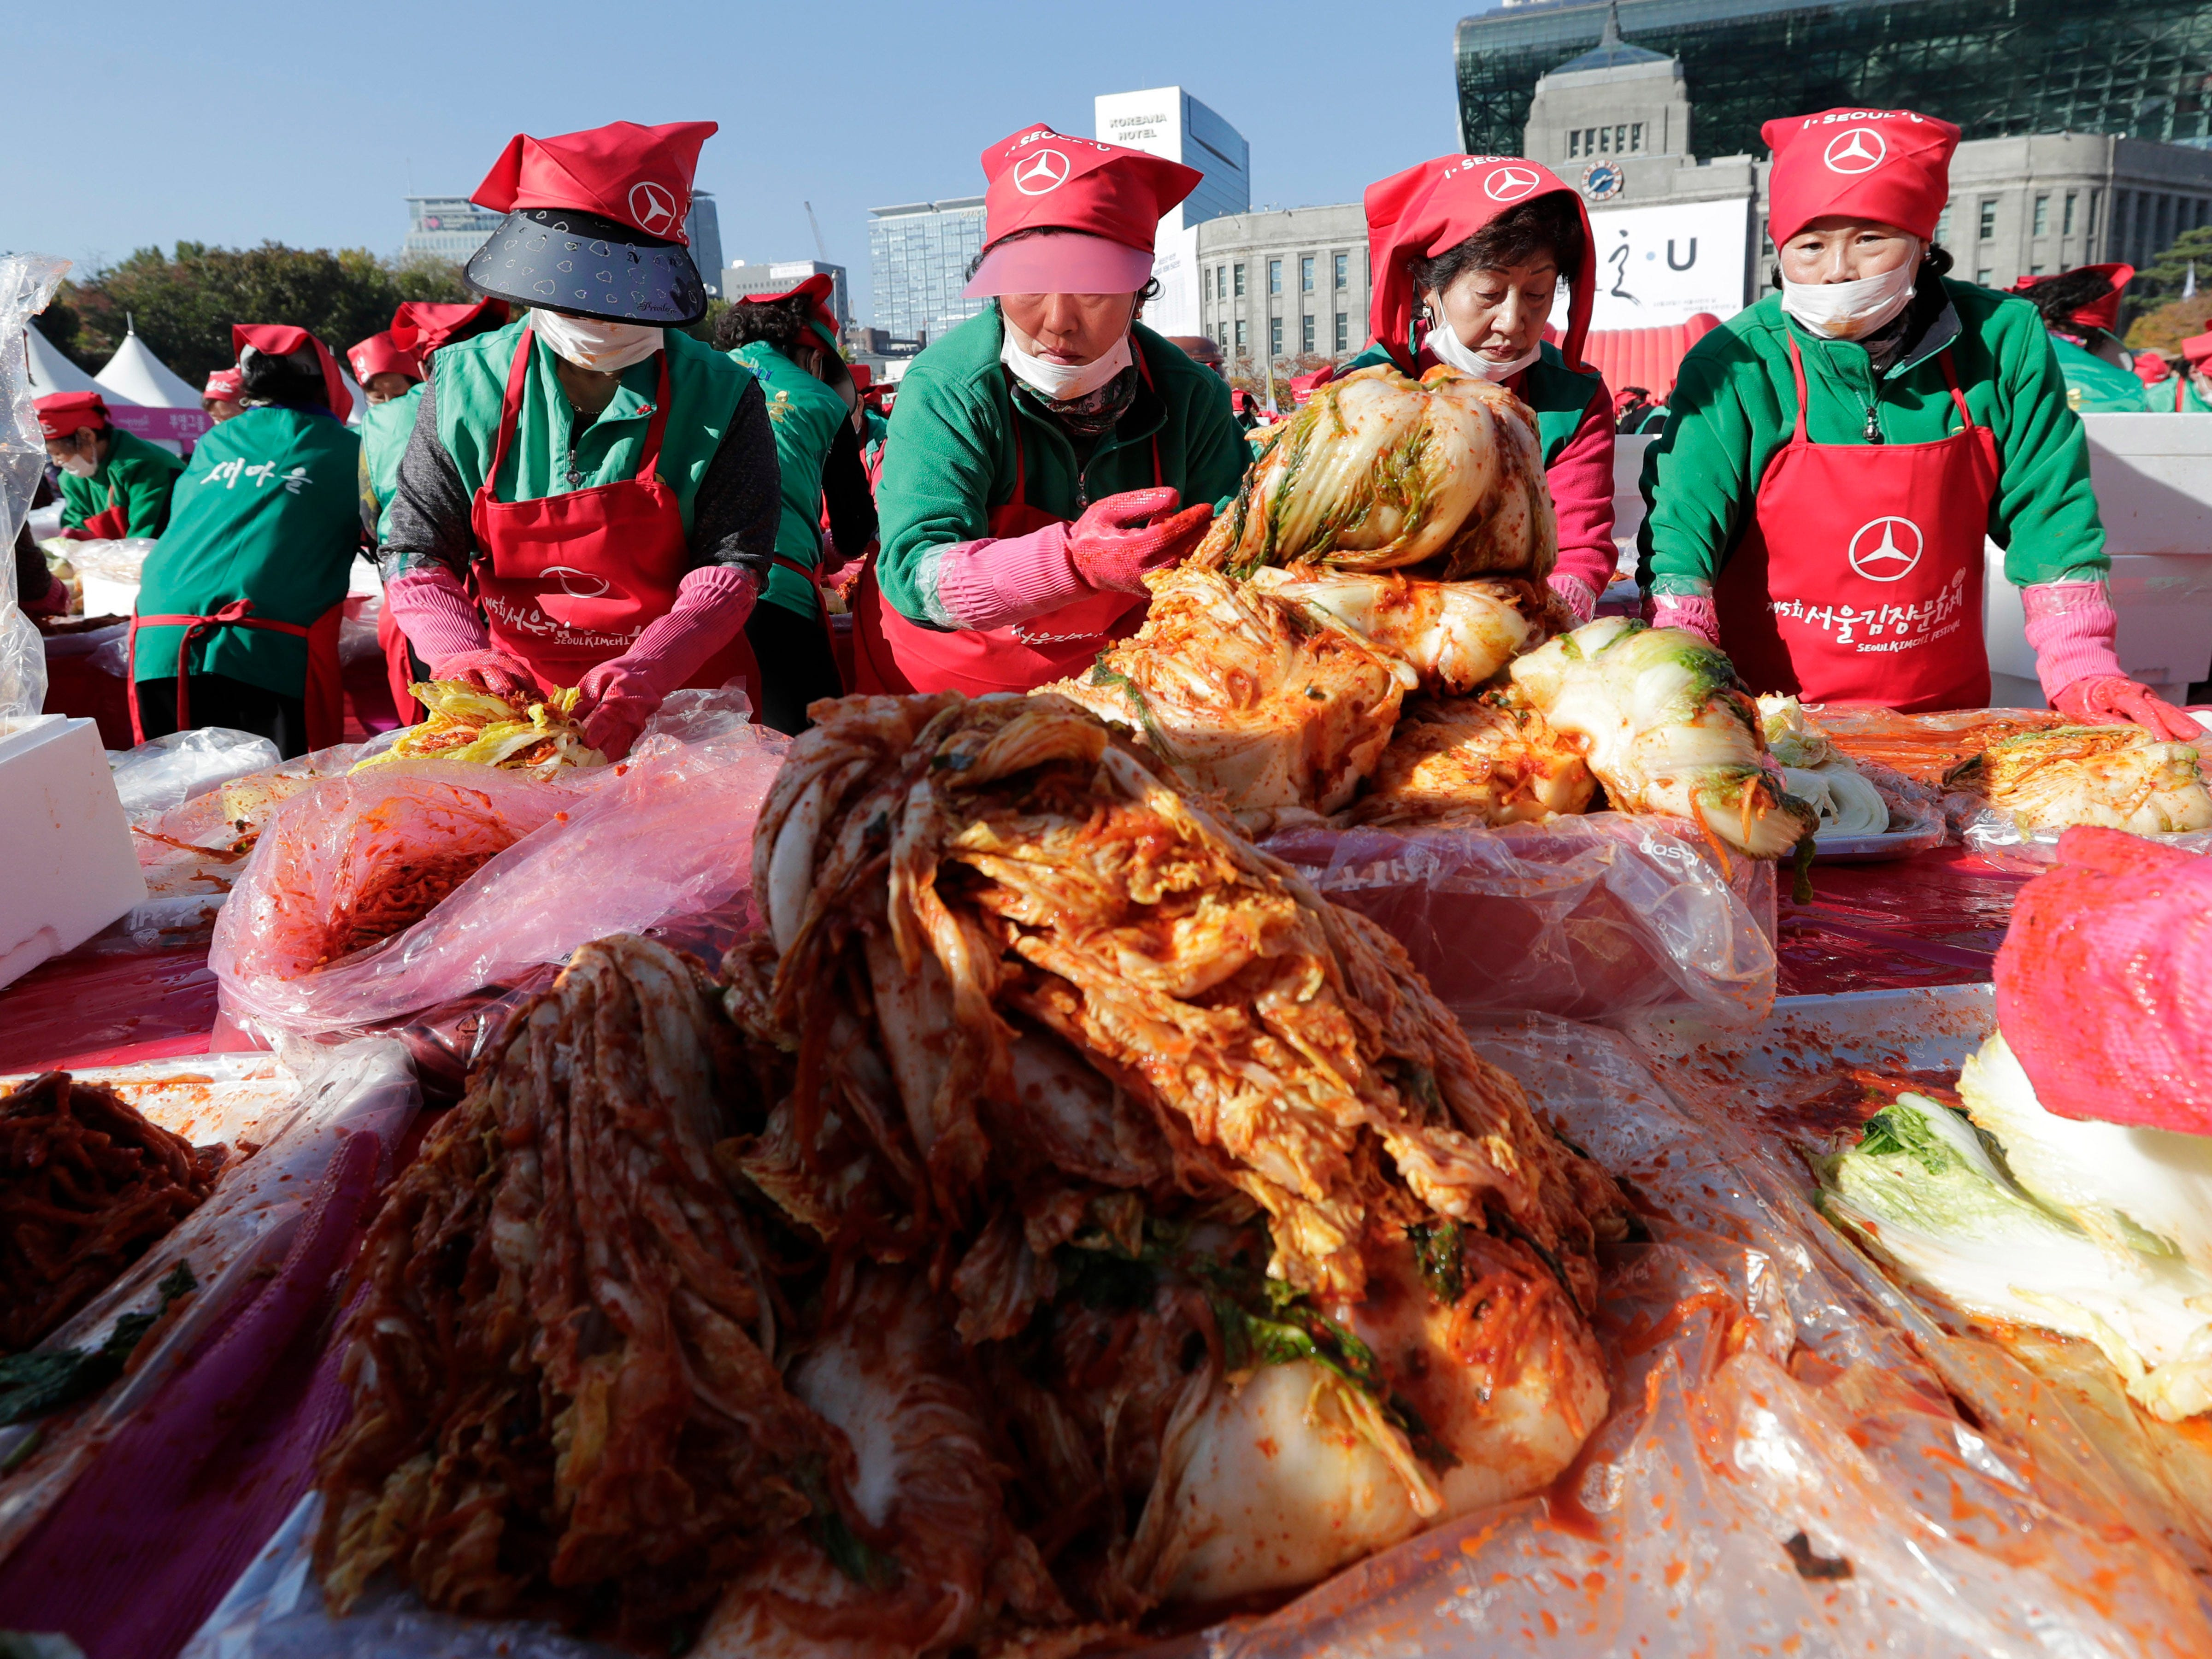 Participants make kimchi, a staple Korean side dish made of fermented vegetables, to donate to needy neighbors in preparation for the winter season during the Seoul Kimchi Festival at Seoul Plaza in Seoul, South Korea, Friday, Nov. 2, 2018. Thousands of people will make kimchi with 165 tons of cabbage during the festival, which runs through Nov. 4.